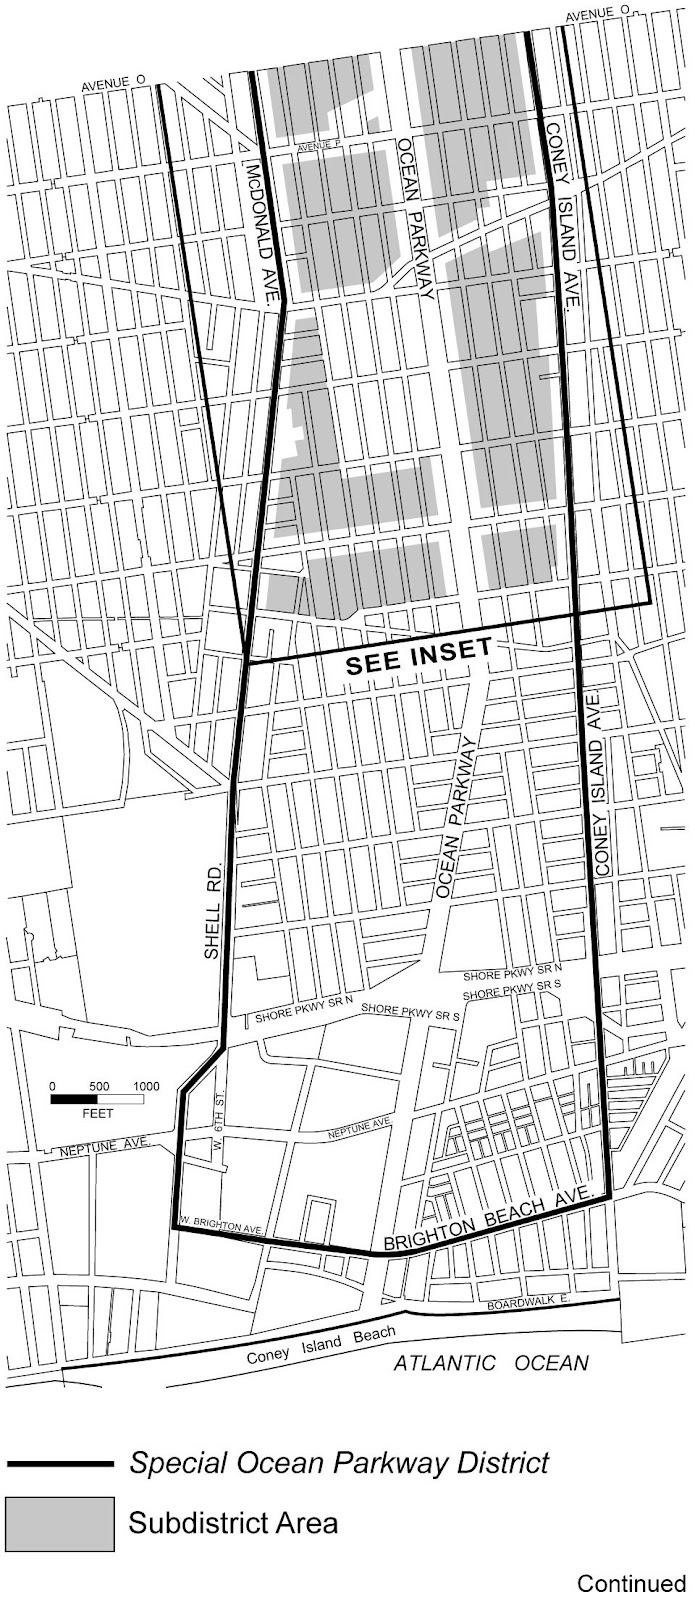 Zoning Resolutions Chapter 3: Special Ocean Parkway District Appendix A.1